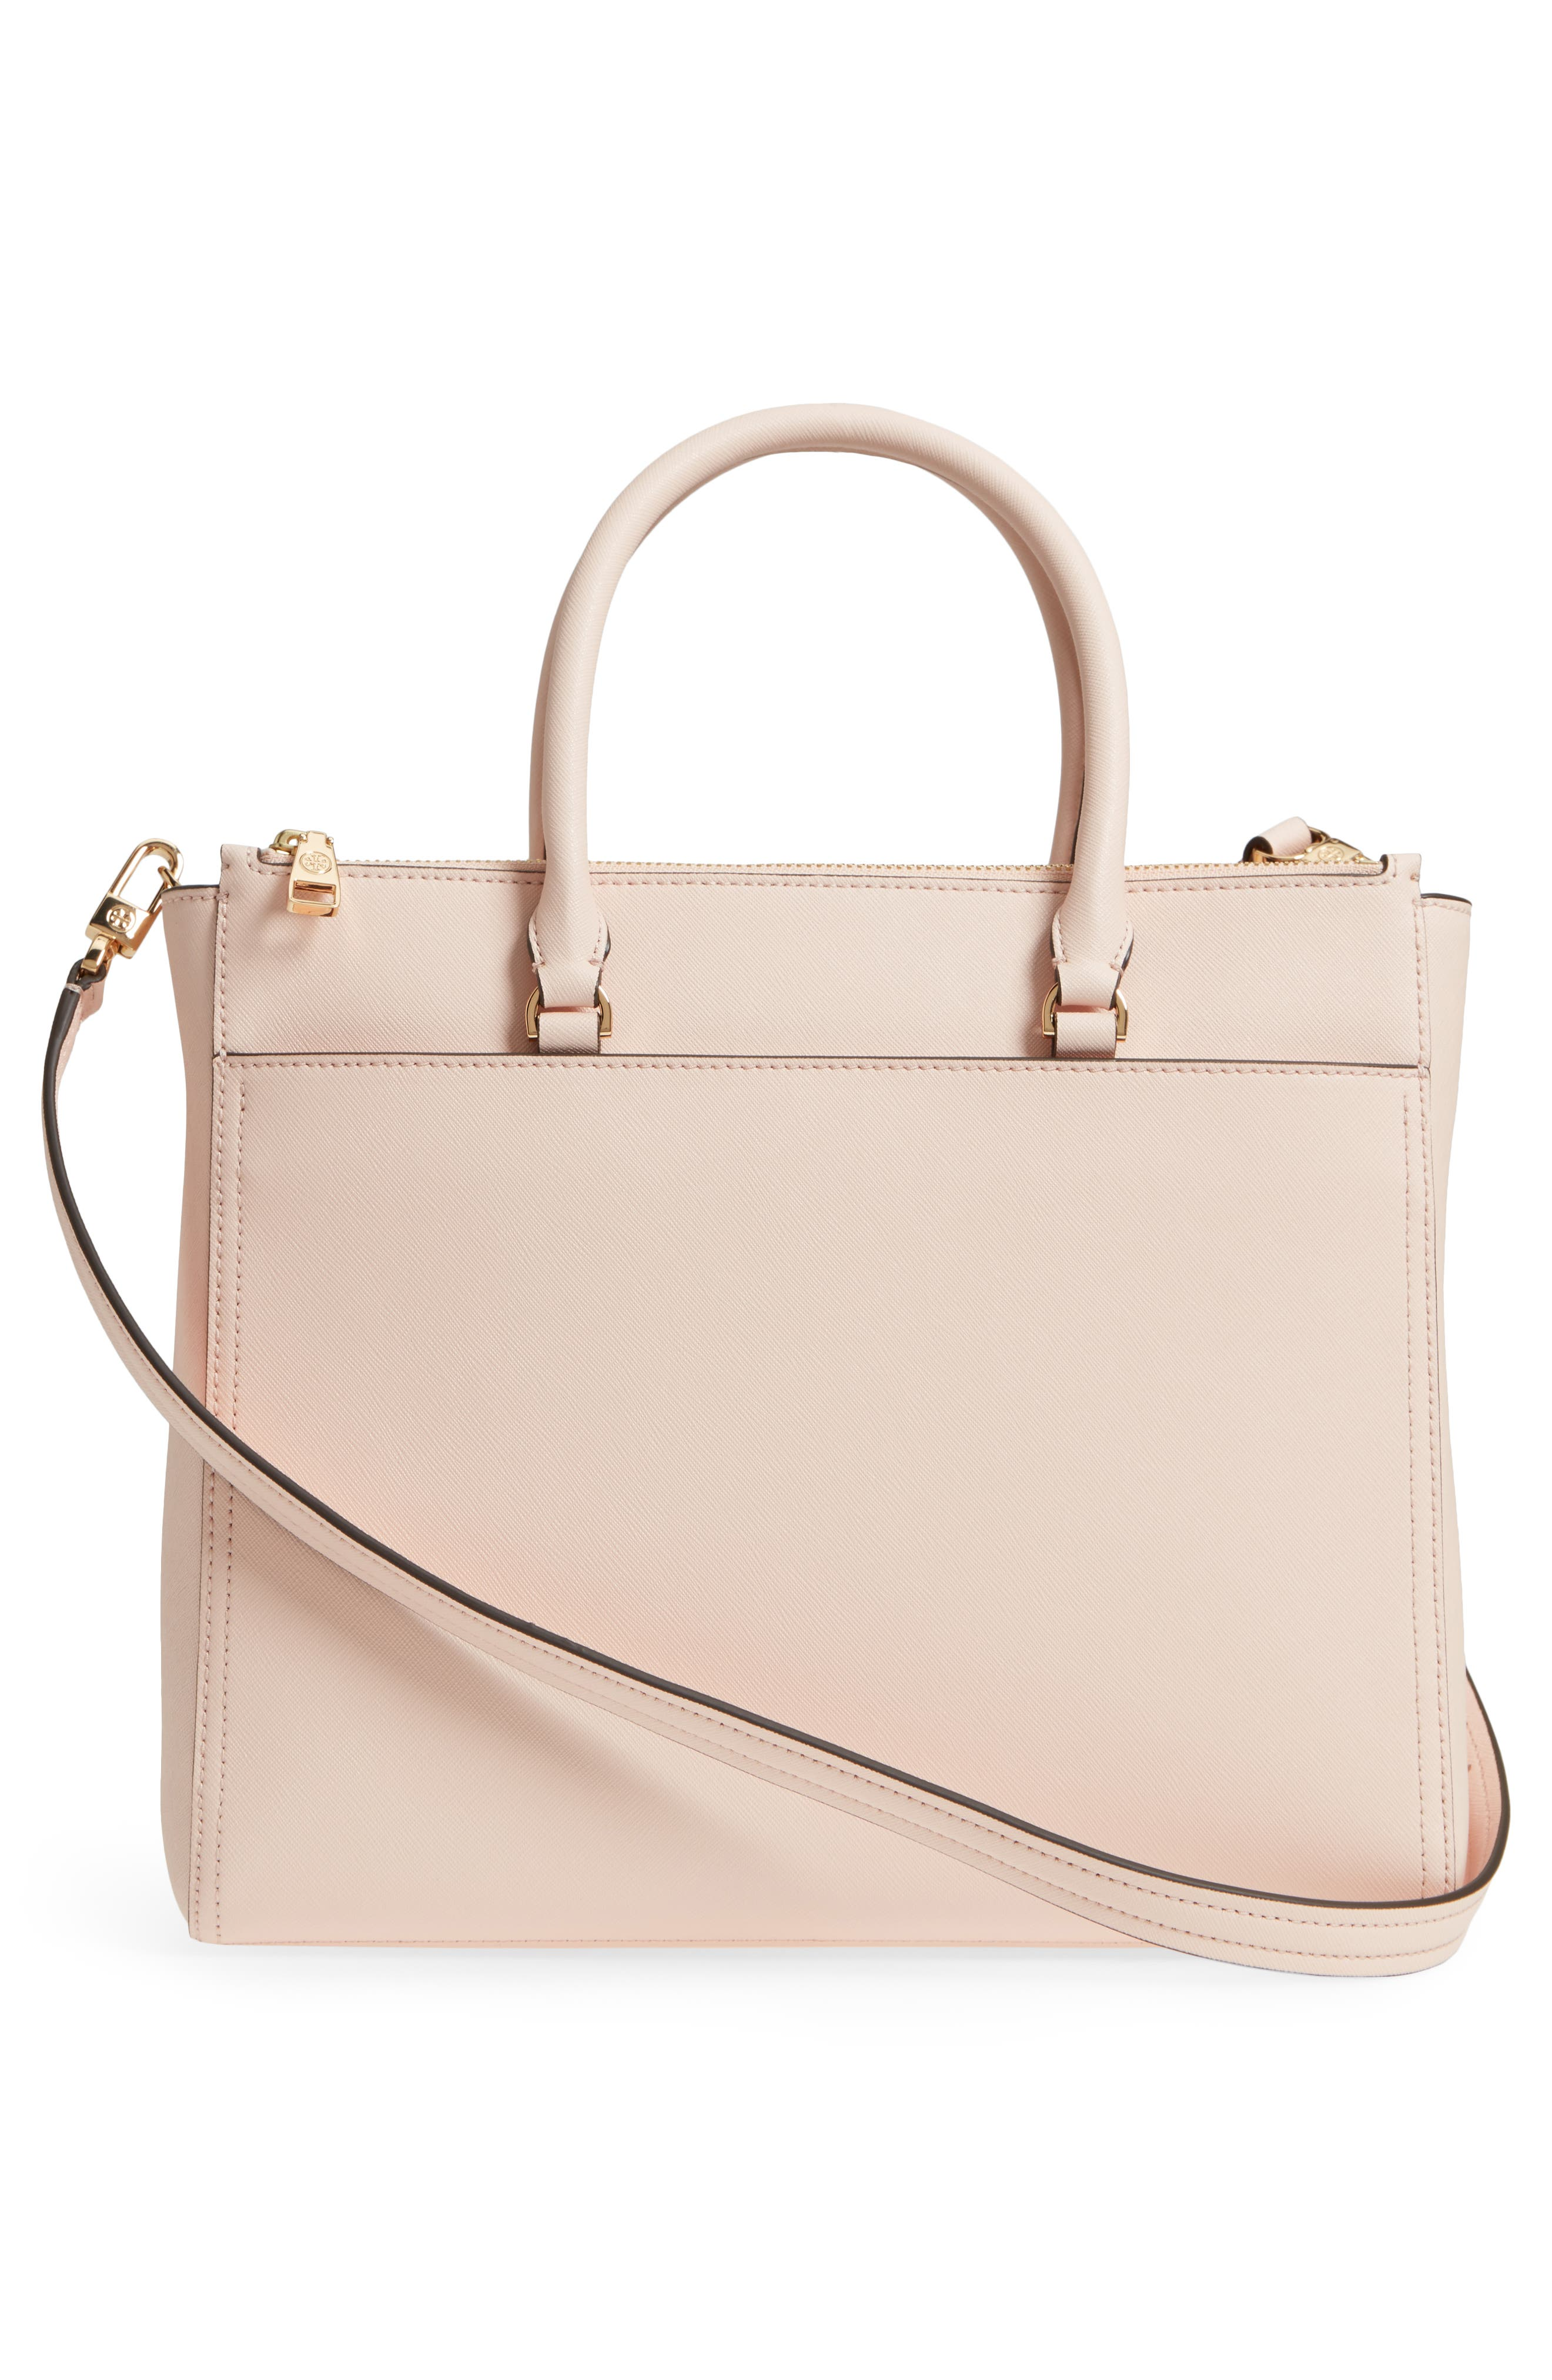 Robinson Double-Zip Leather Tote,                             Alternate thumbnail 3, color,                             PALE APRICOT / ROYAL NAVY